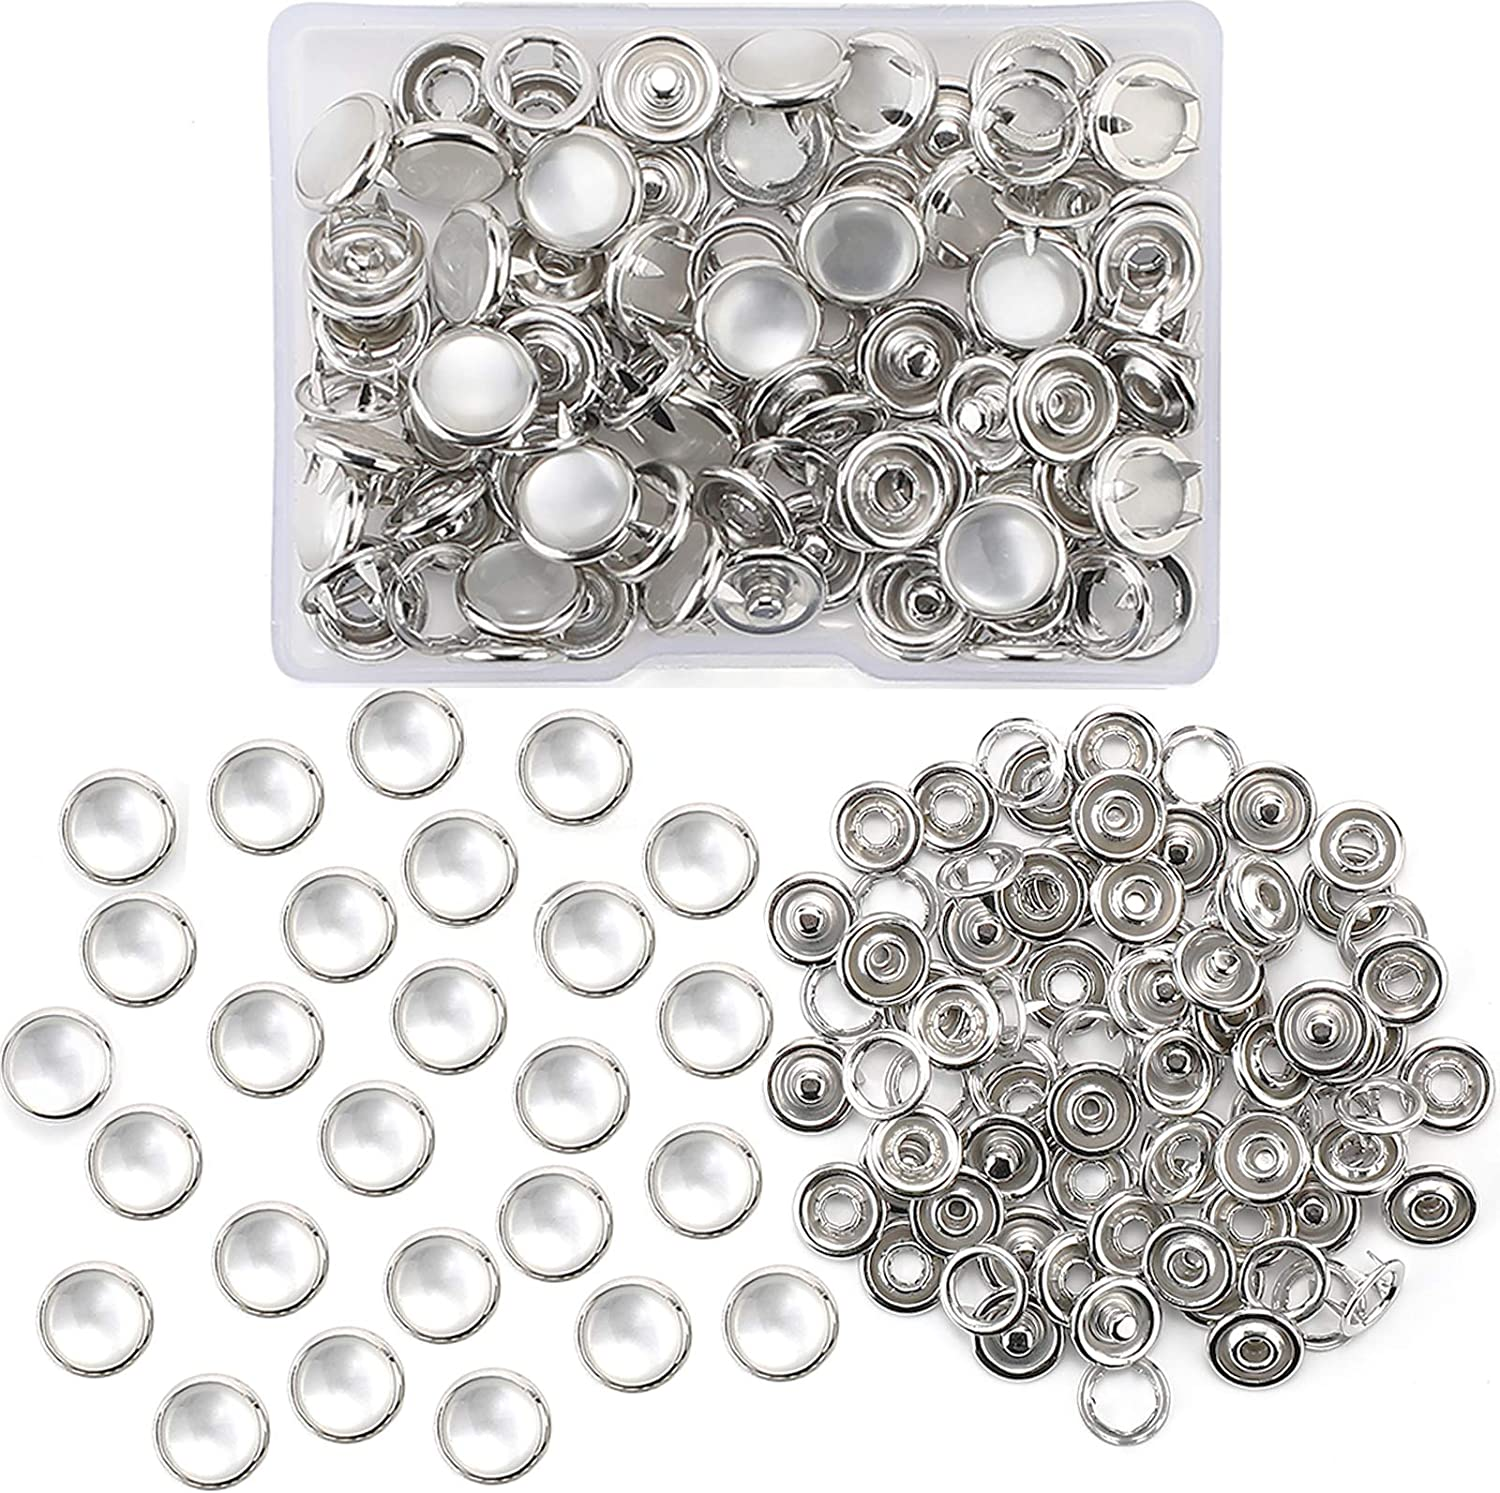 Pearl Snaps Fasteners Kit, 10mm Clothes Ring for Western Shirts Clothes Prong Ring Snaps